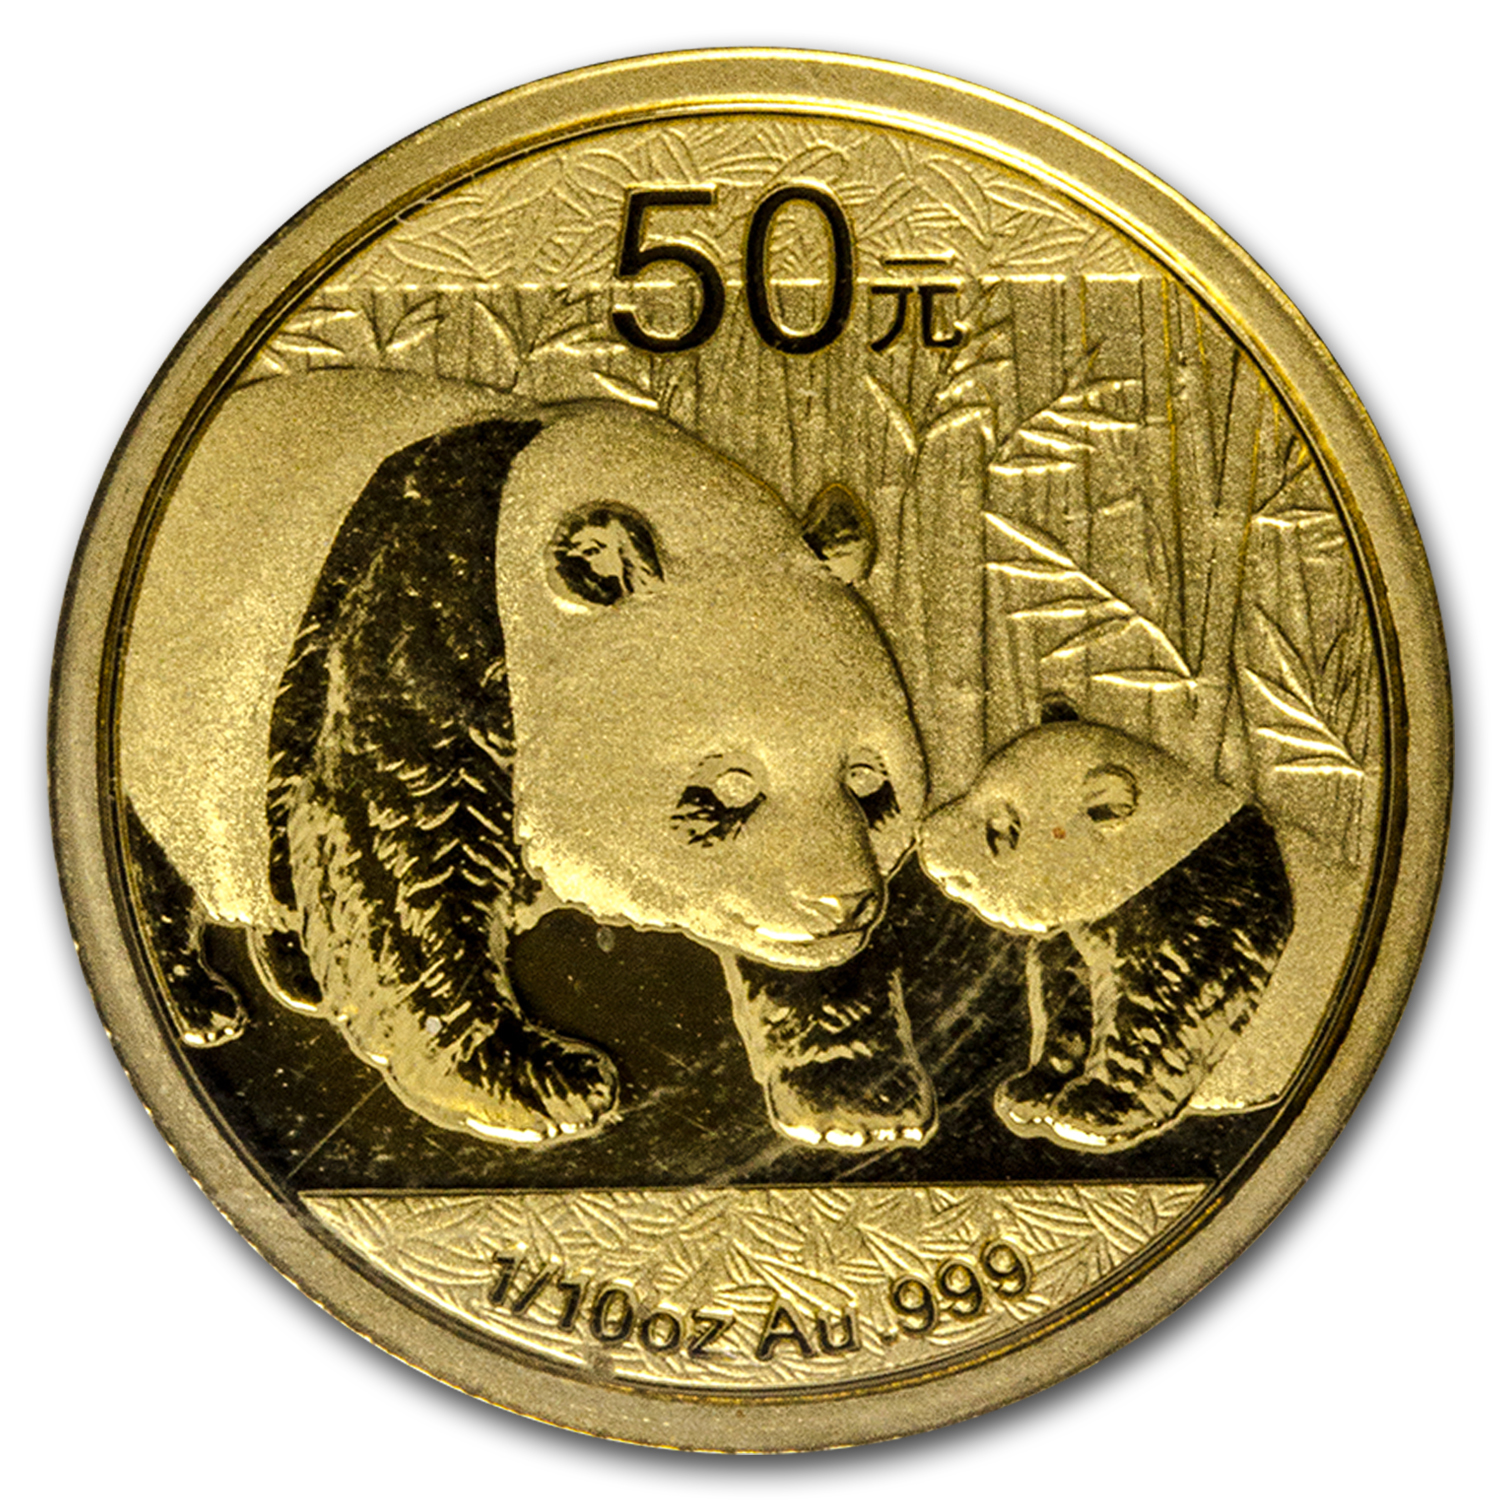 2011 1/10 oz Gold Chinese Panda BU (Sealed)